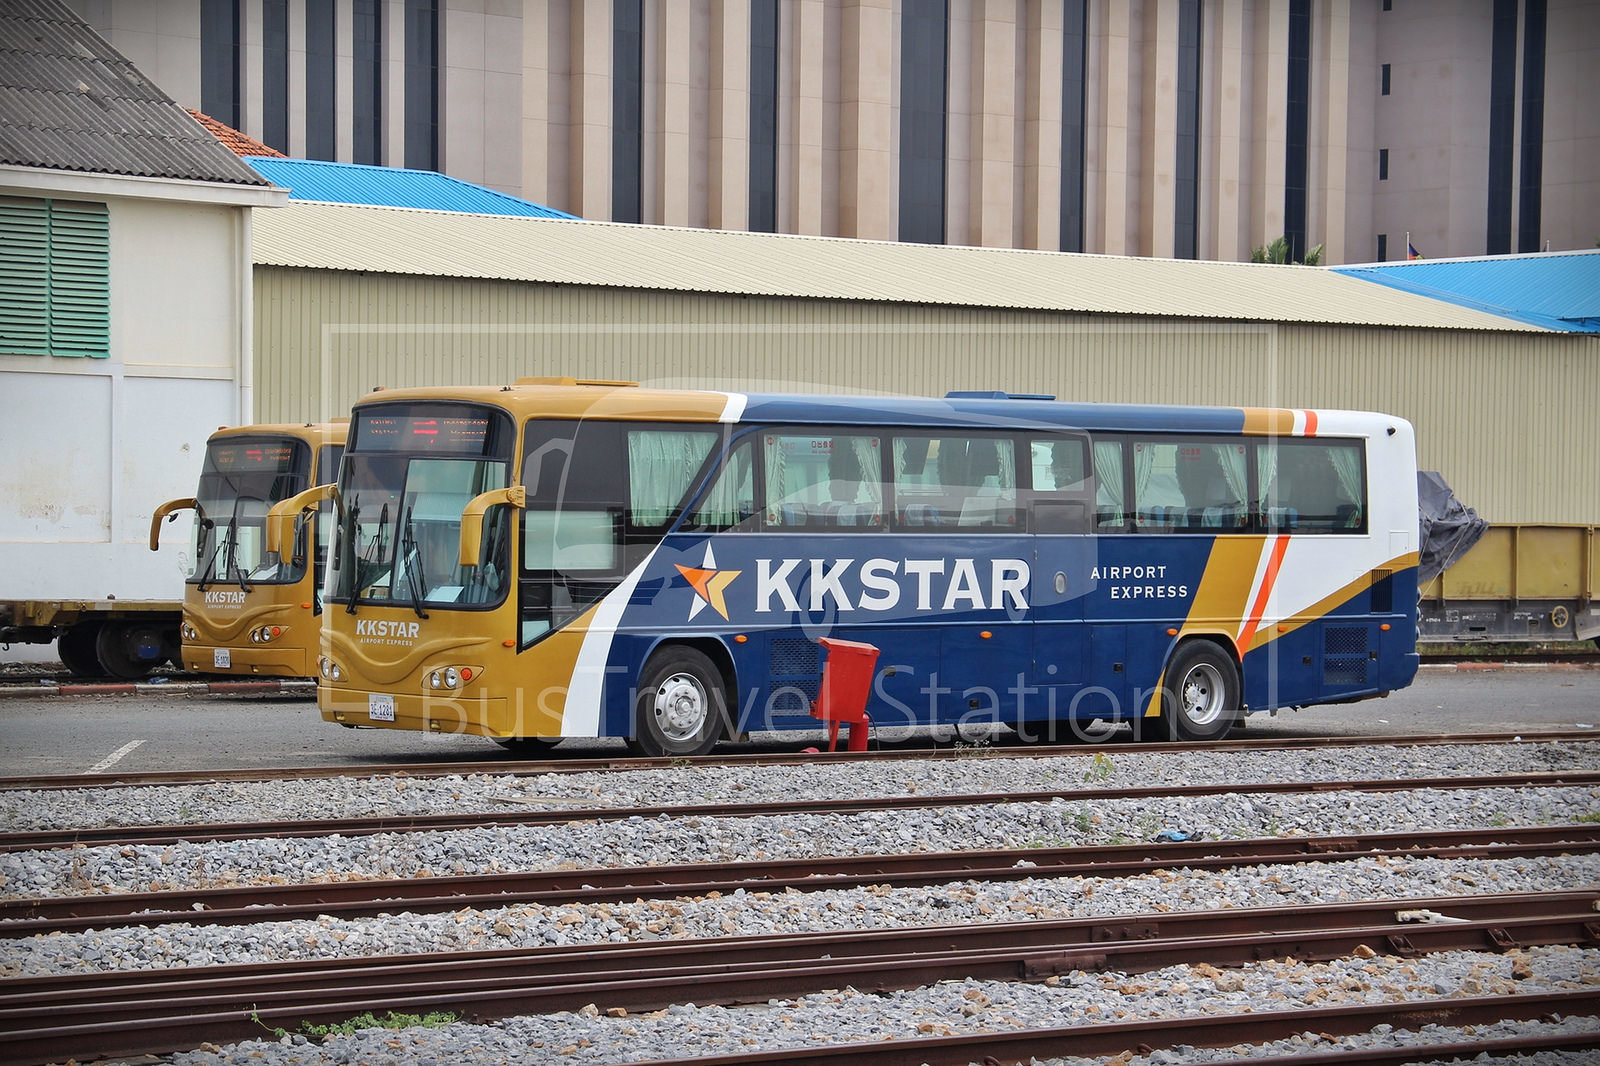 KK Star Airport Shuttle pic 15.jpg